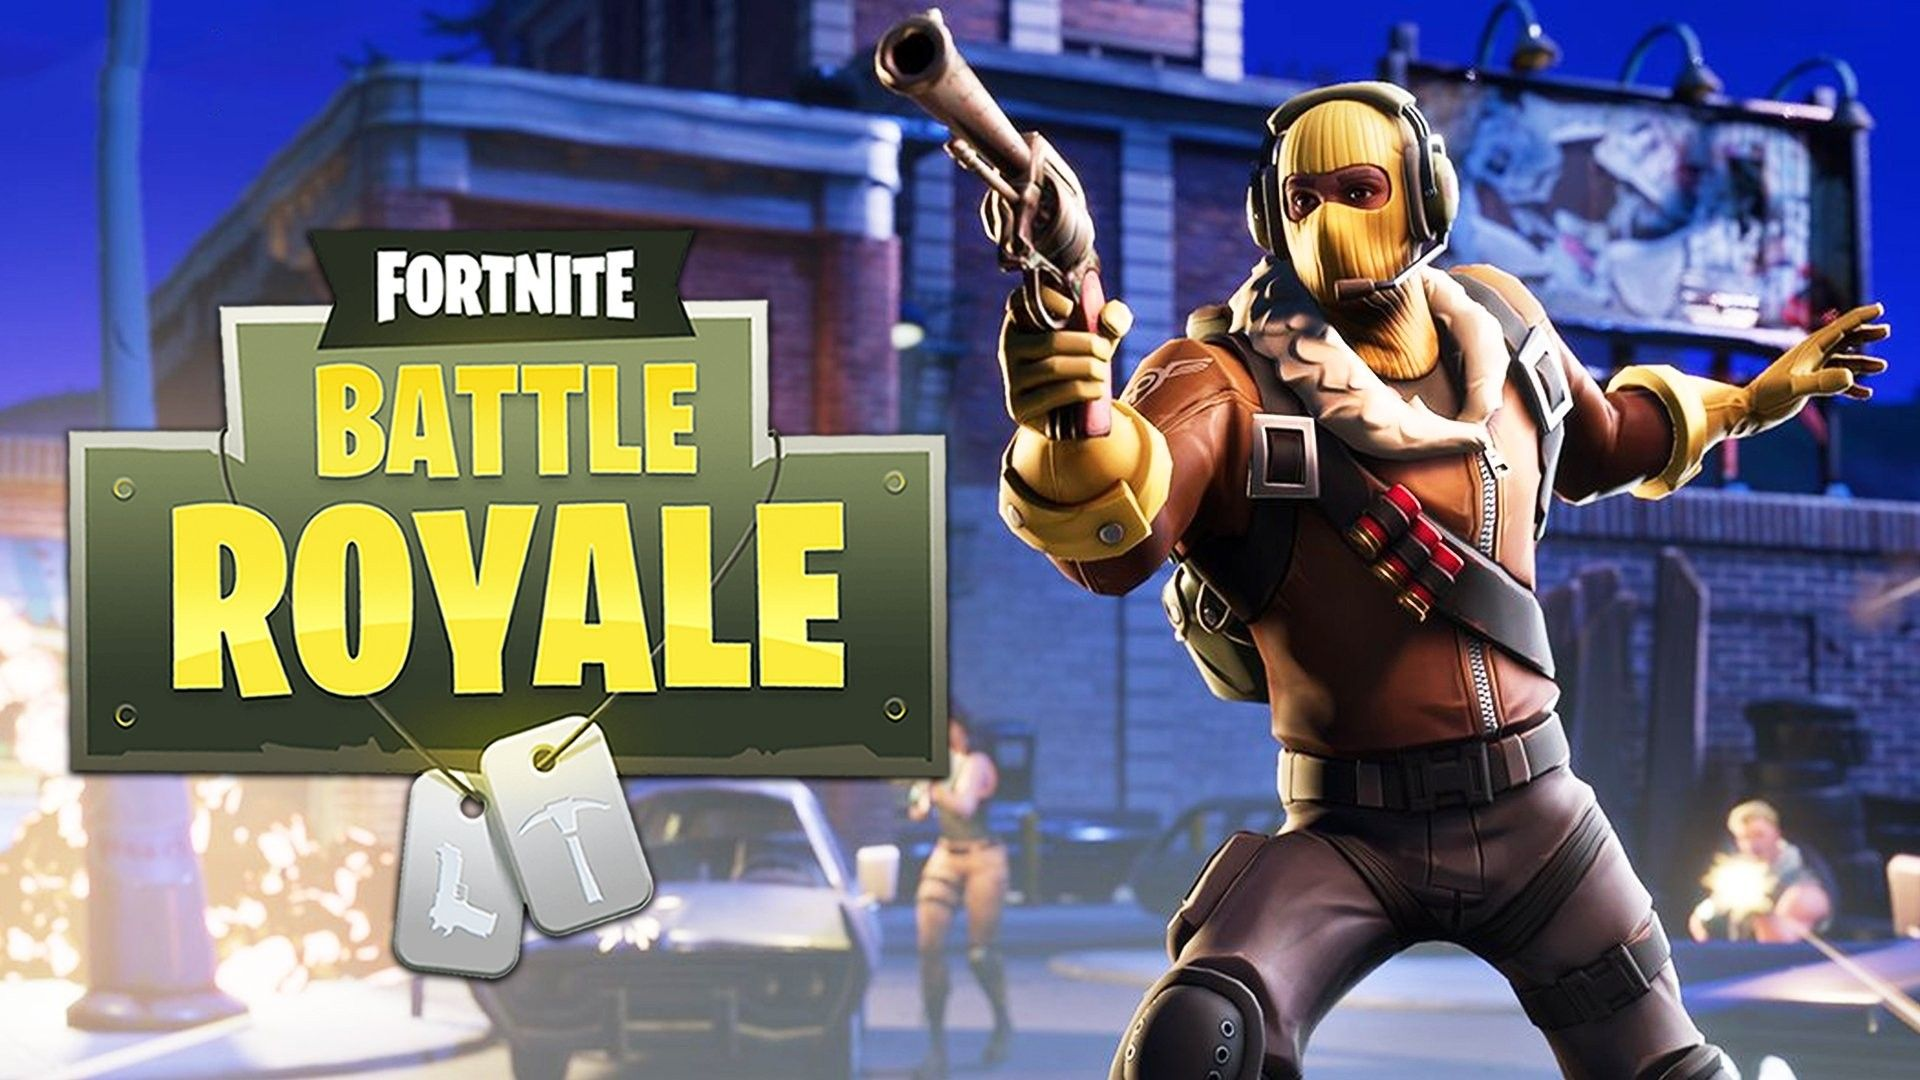 Fortnite Battle Royale Hd Wallpapers Theme Fortnite Funny Fails